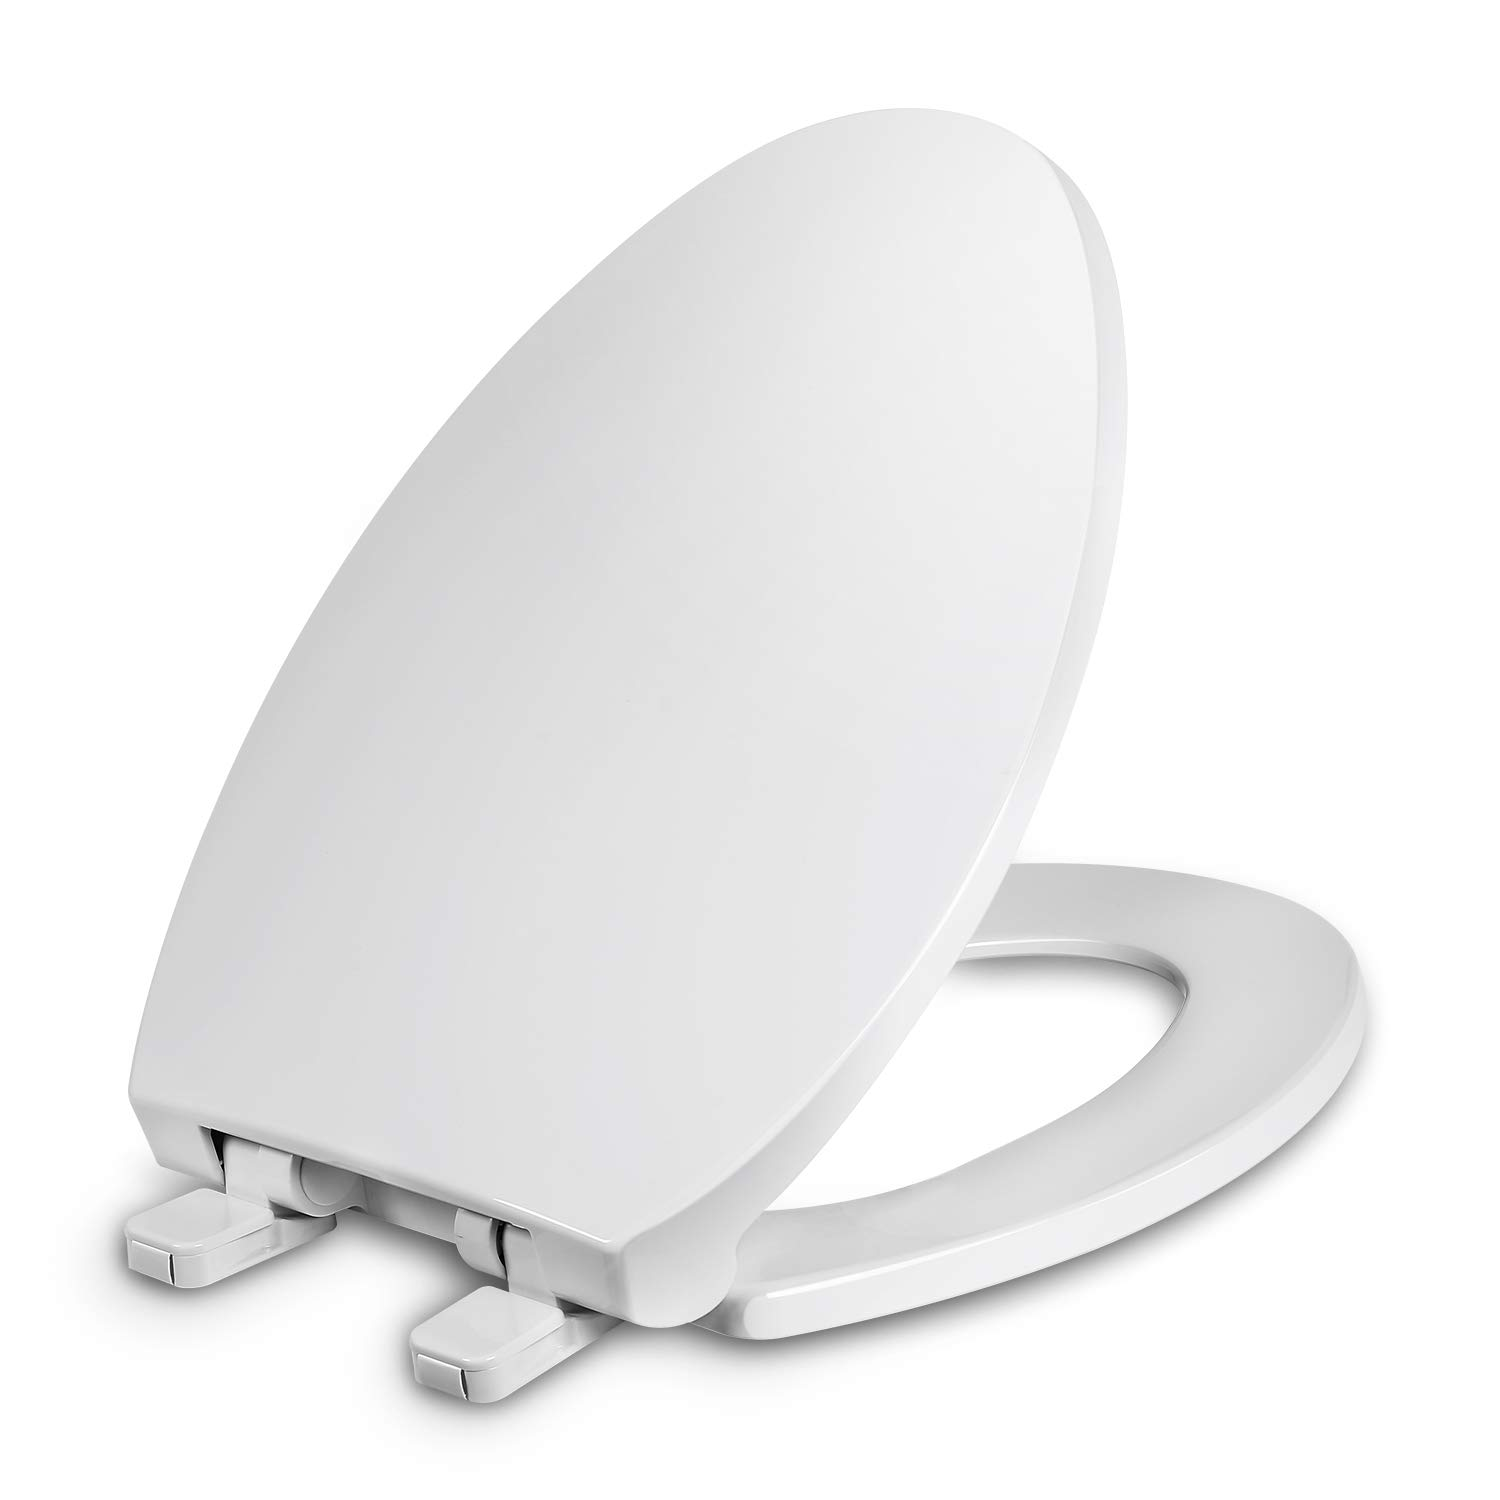 Brilliant Elongated Toilet Seat With Cover Slow Close Easy To Install Plastic White Fits All Elongated Or Oval Toilets Squirreltailoven Fun Painted Chair Ideas Images Squirreltailovenorg